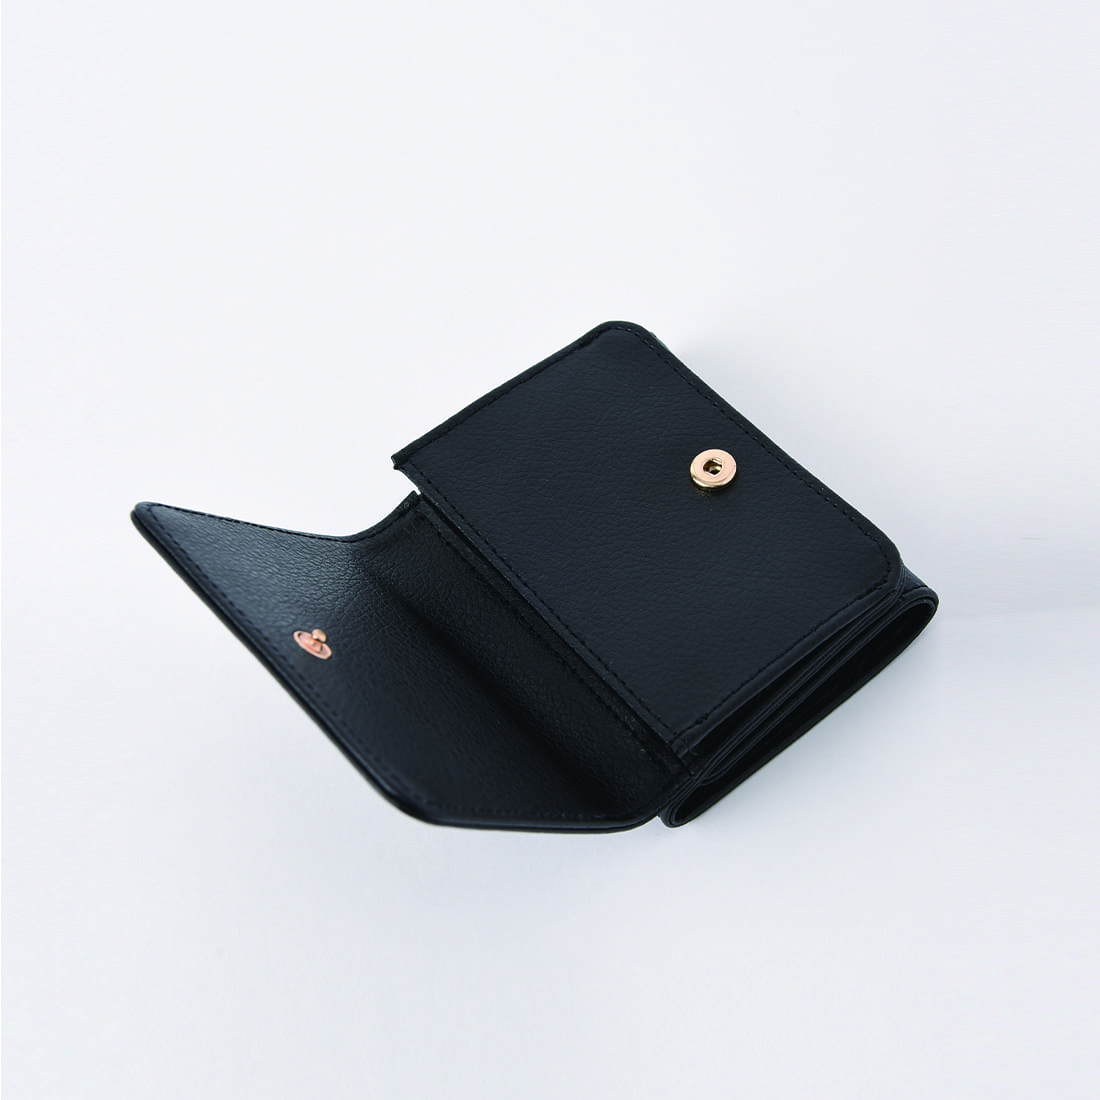 【ReZARD】Metal Plate mini Wallet